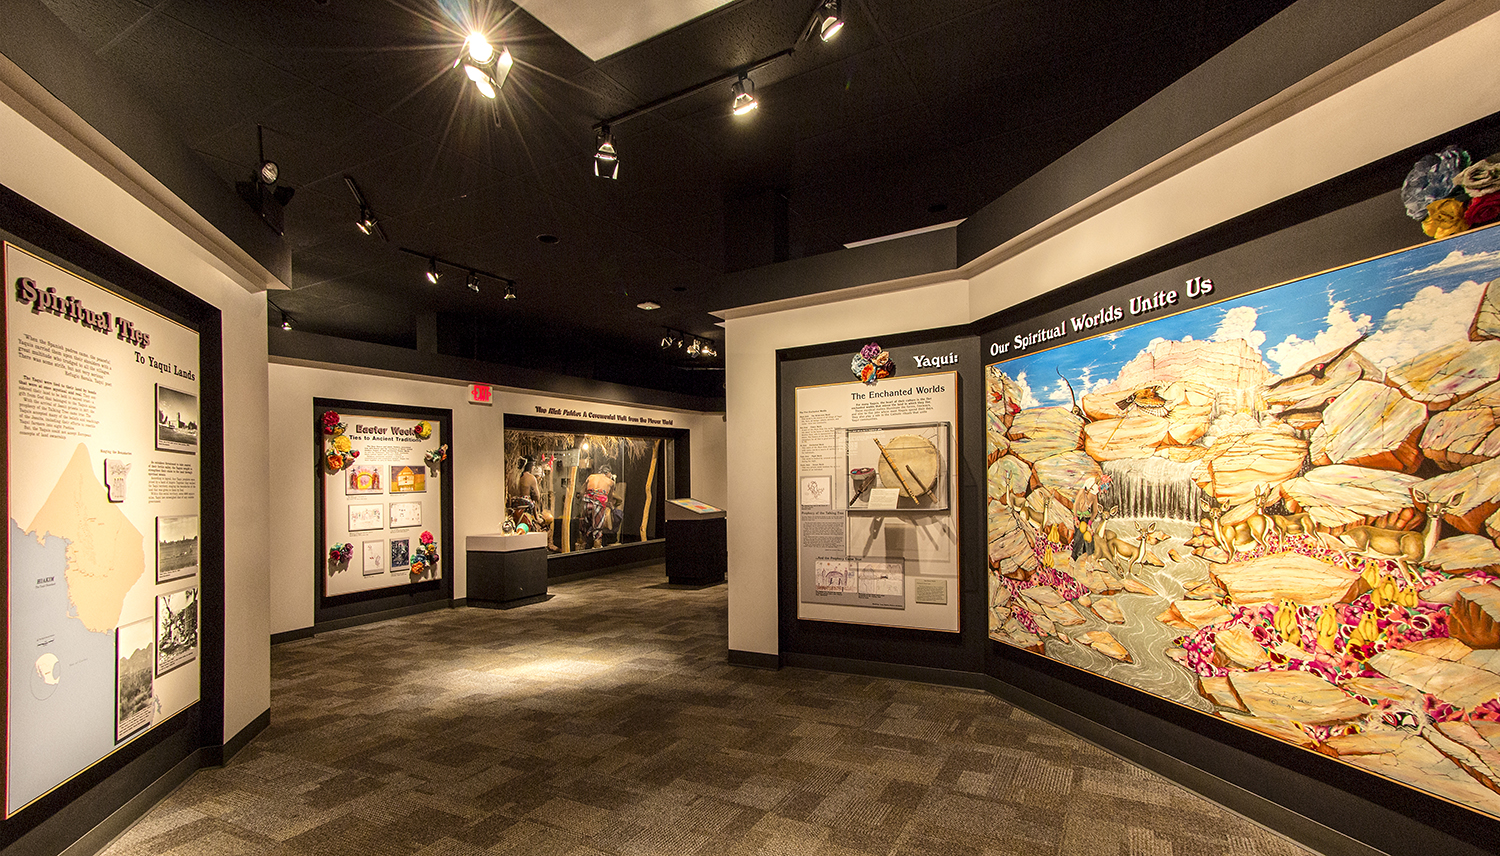 This image shows a view of the Yoeme section within the Paths of Life exhibit.